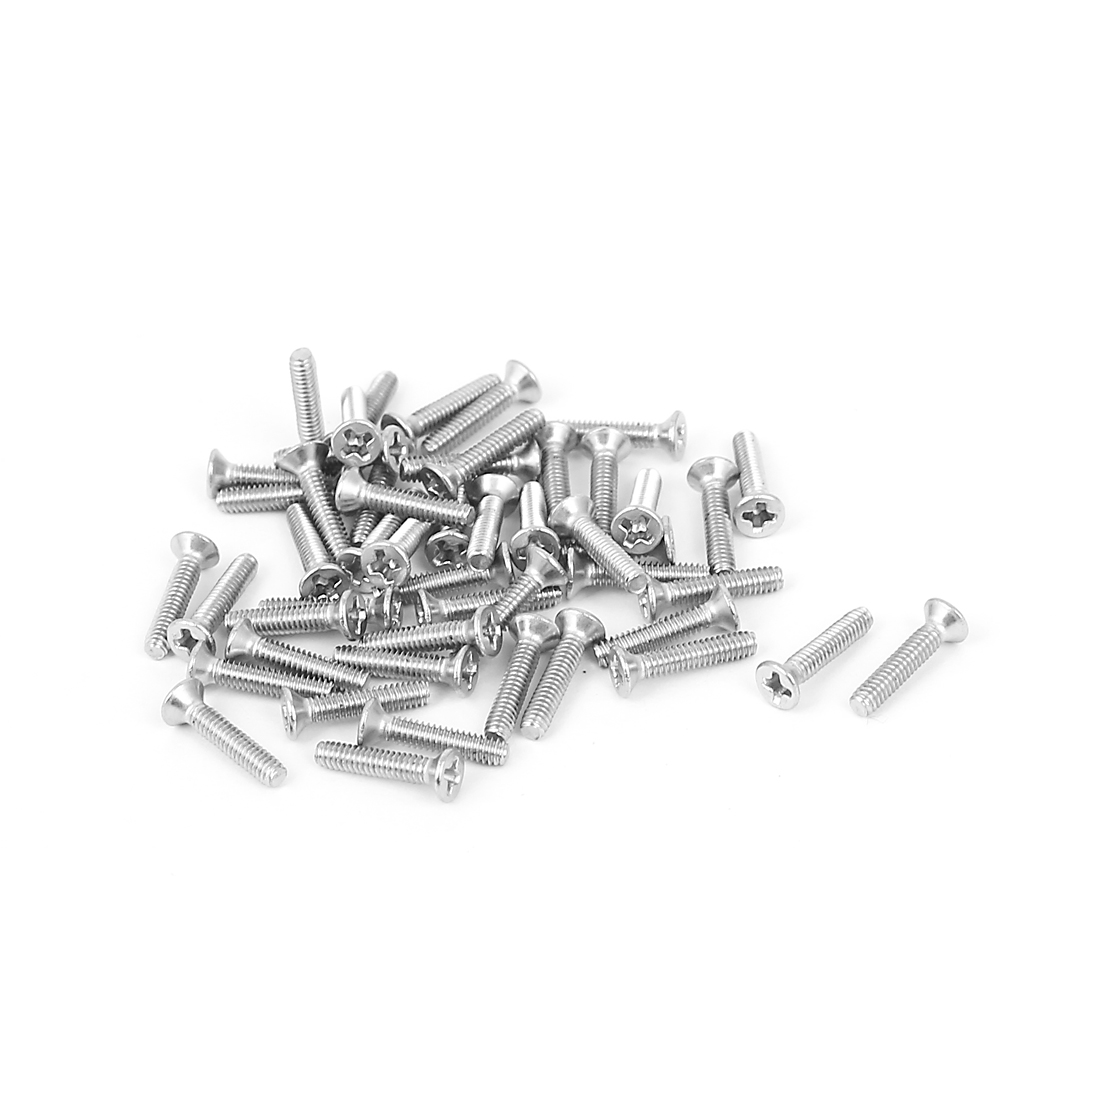 M2x10mm 304 Stainless Steel Phillips Flat Countersunk Head Machine Screws 50pcs